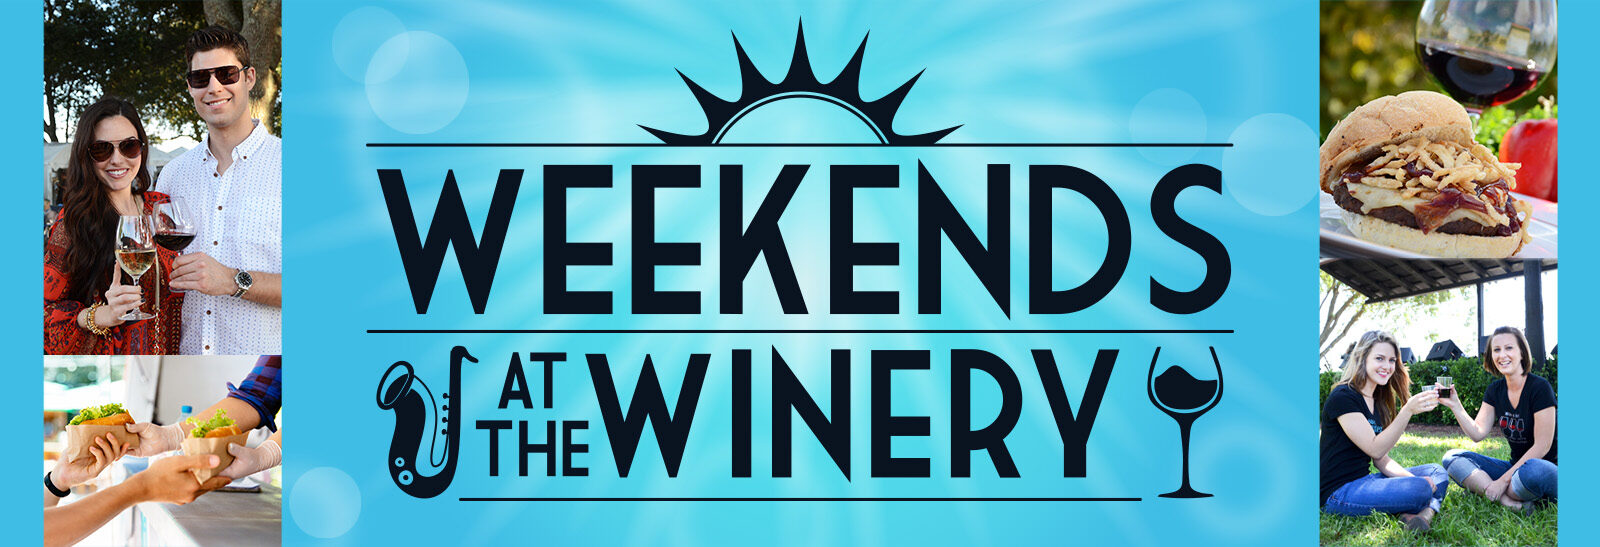 Lakeridge Winery Weekends at the Winery 2021